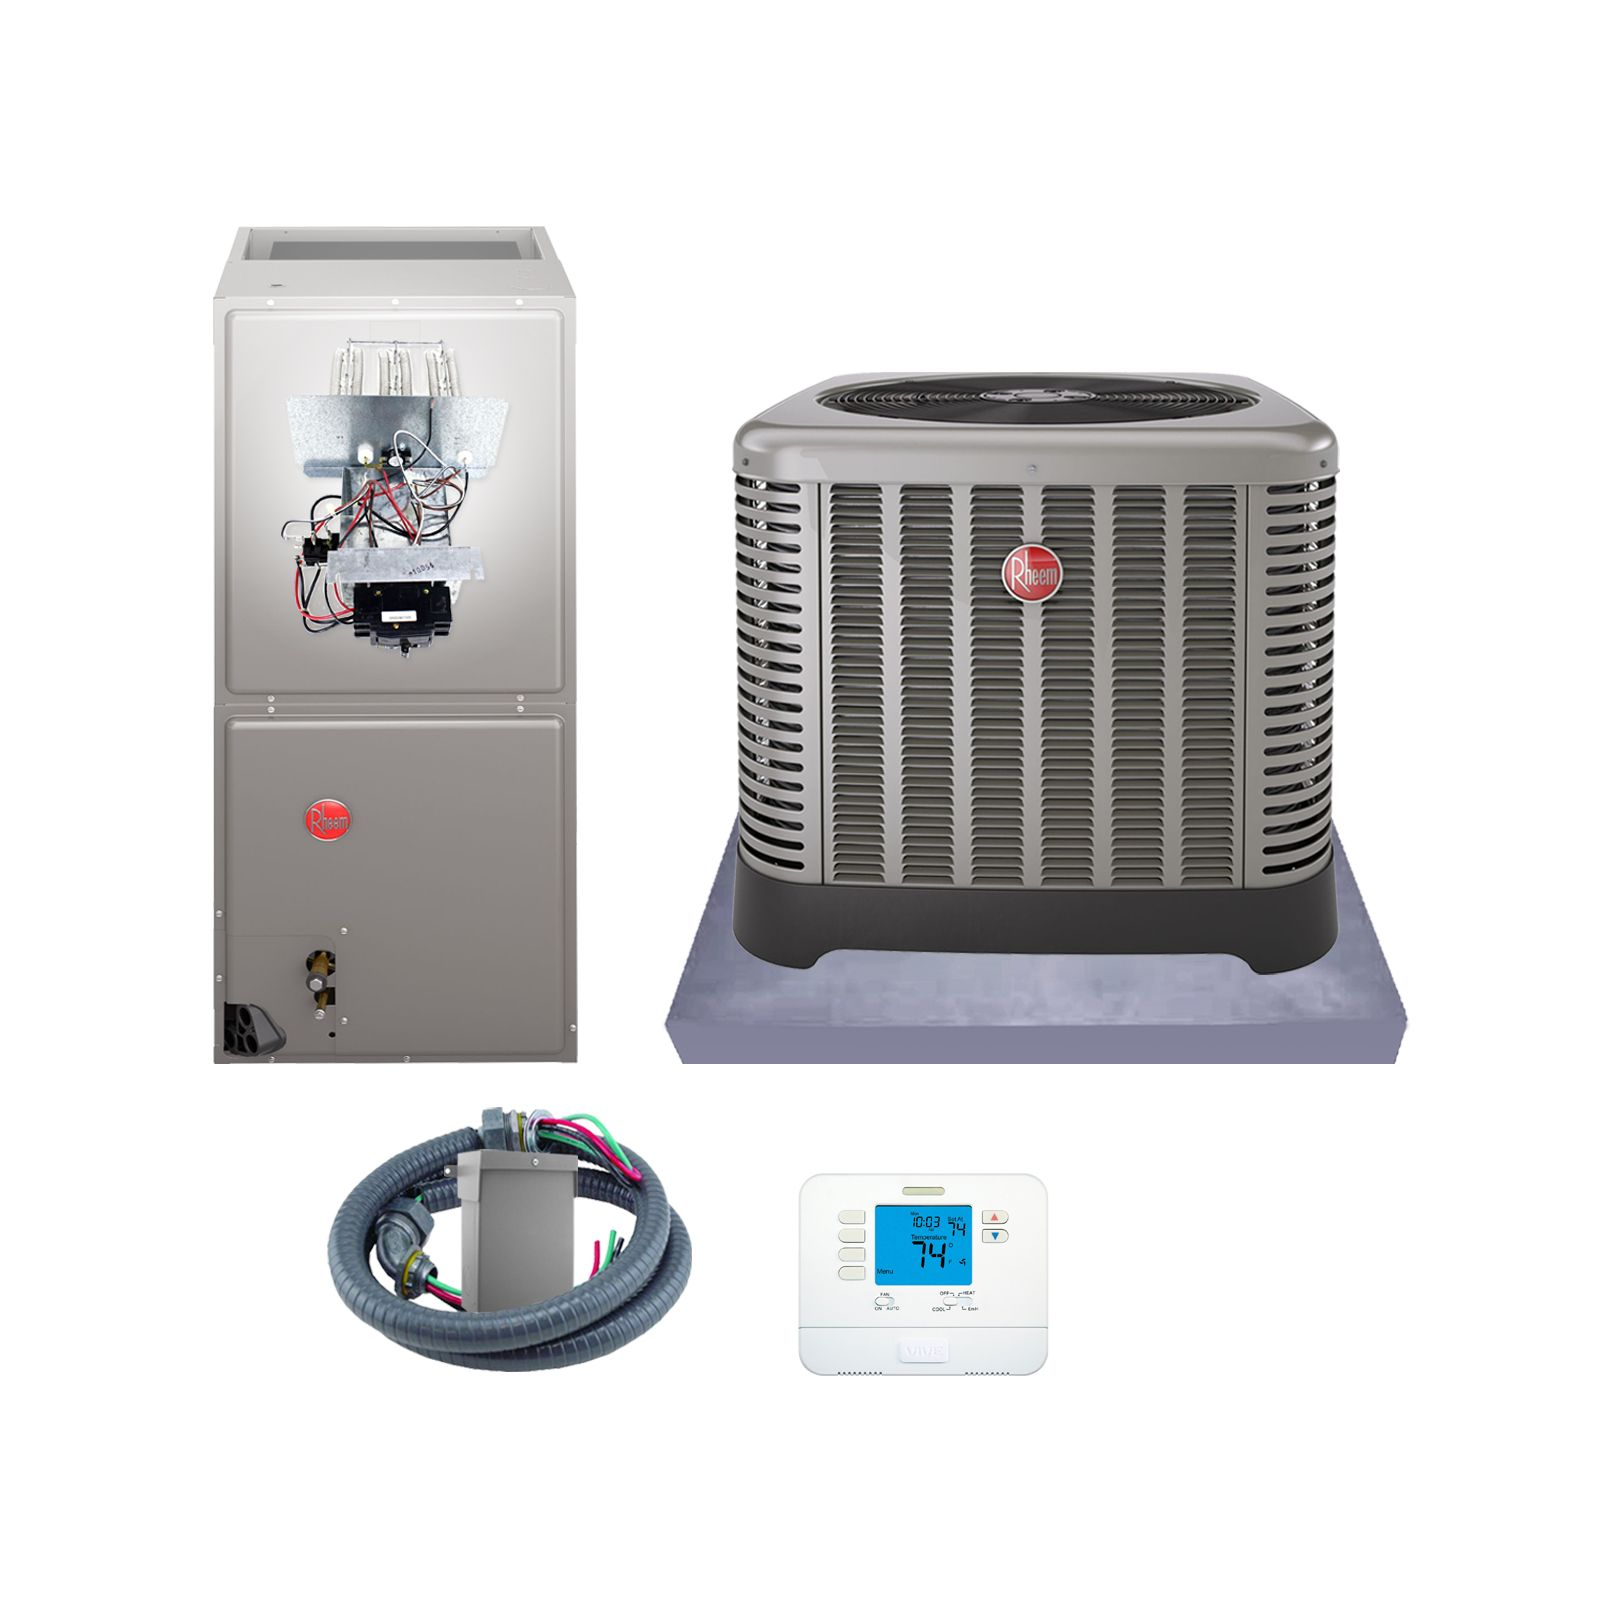 Rheem (AHRI 7509100) 2 1/2 Ton, 15.5 SEER/13 EER Classic Series, Heat Pump Split System and Install Kit